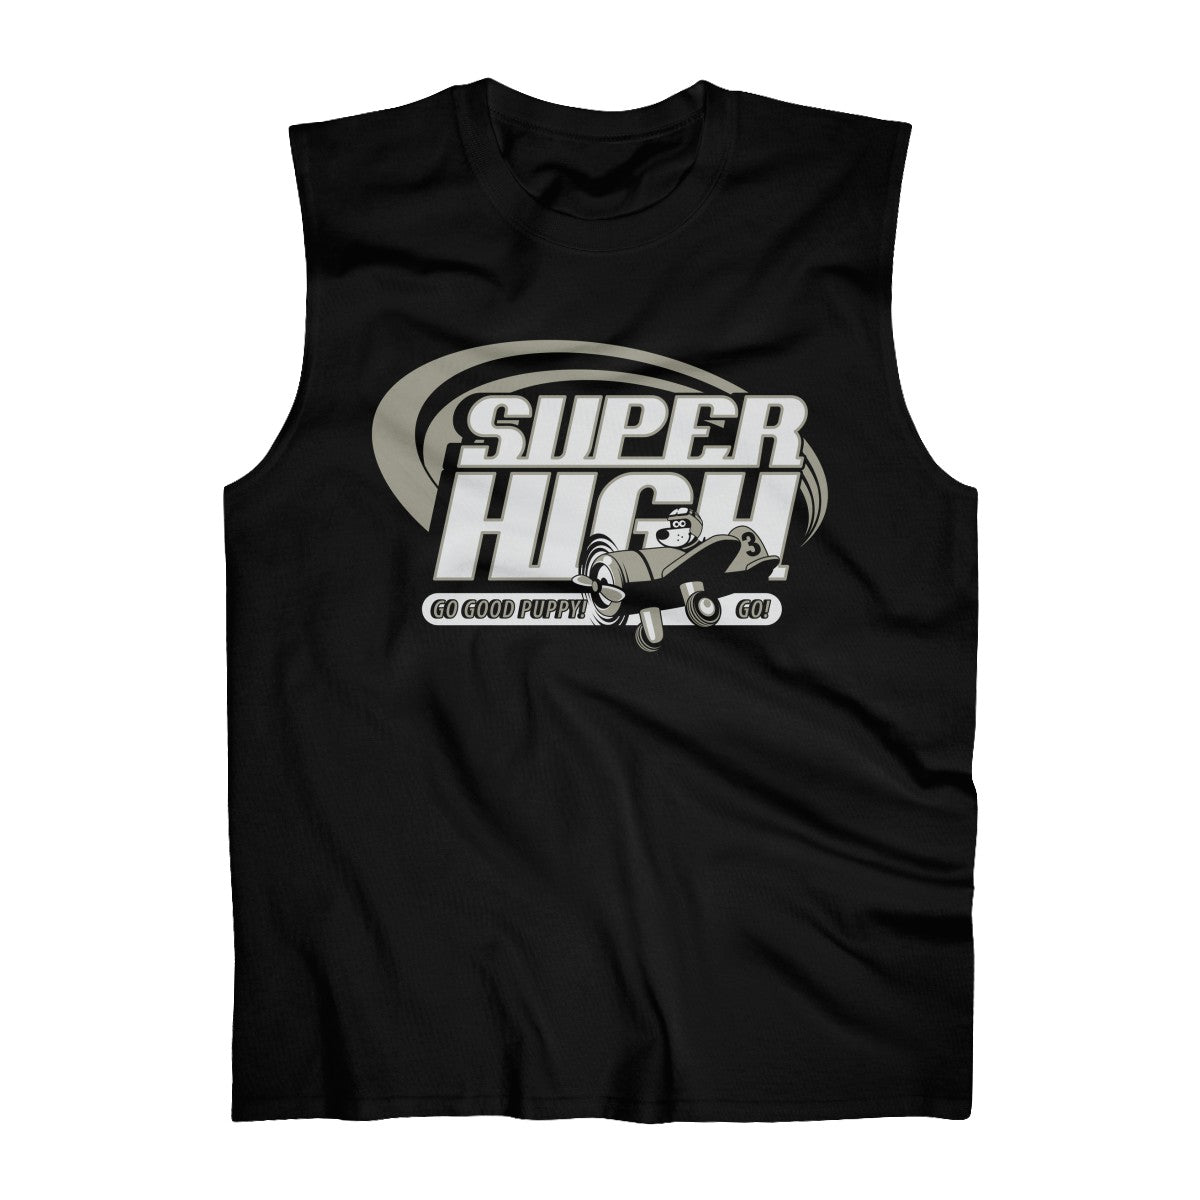 Super High . Gray Print . Men's Ultra Cotton Sleeveless Tank